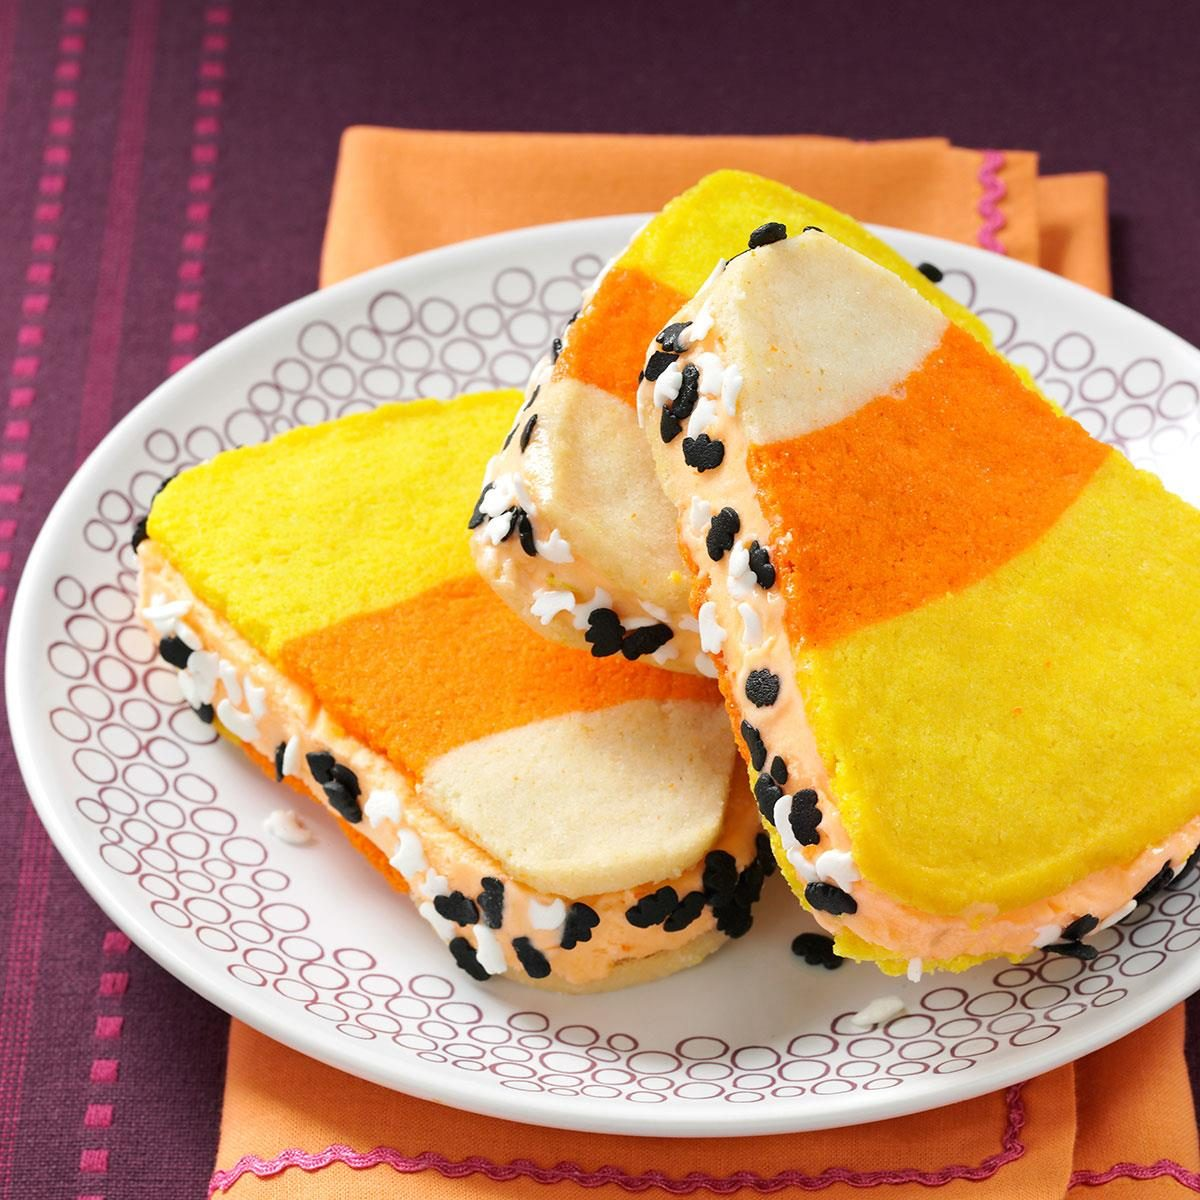 Chocolate Cookes N Cream Dunmore Candy Kitchen: Candy Corn Ice Cream Sandwiches Recipe